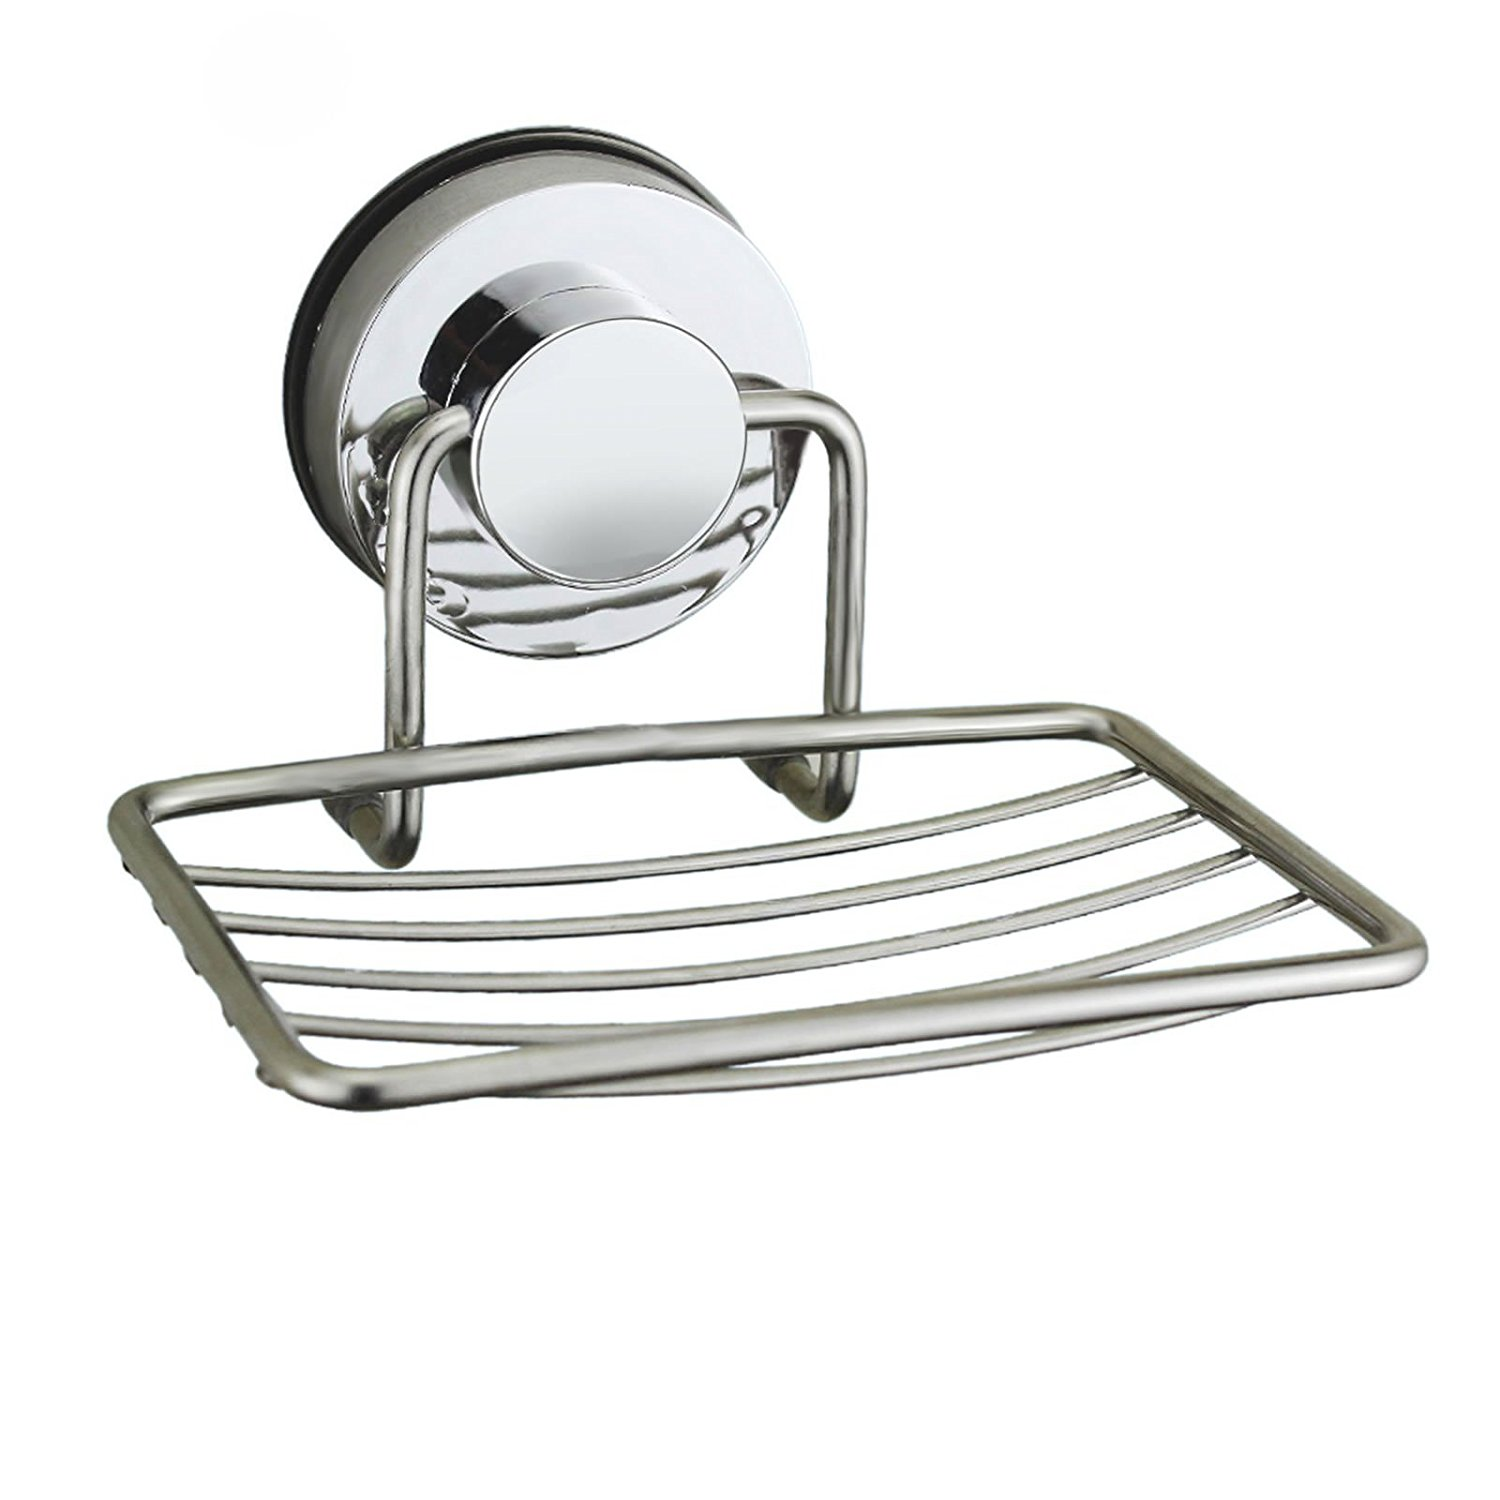 Generic Soap Tray Soap Holder Soap Dish Soap Basket Strong Suction Wall Mount Bathroom Soap Holder Tray Electroplating